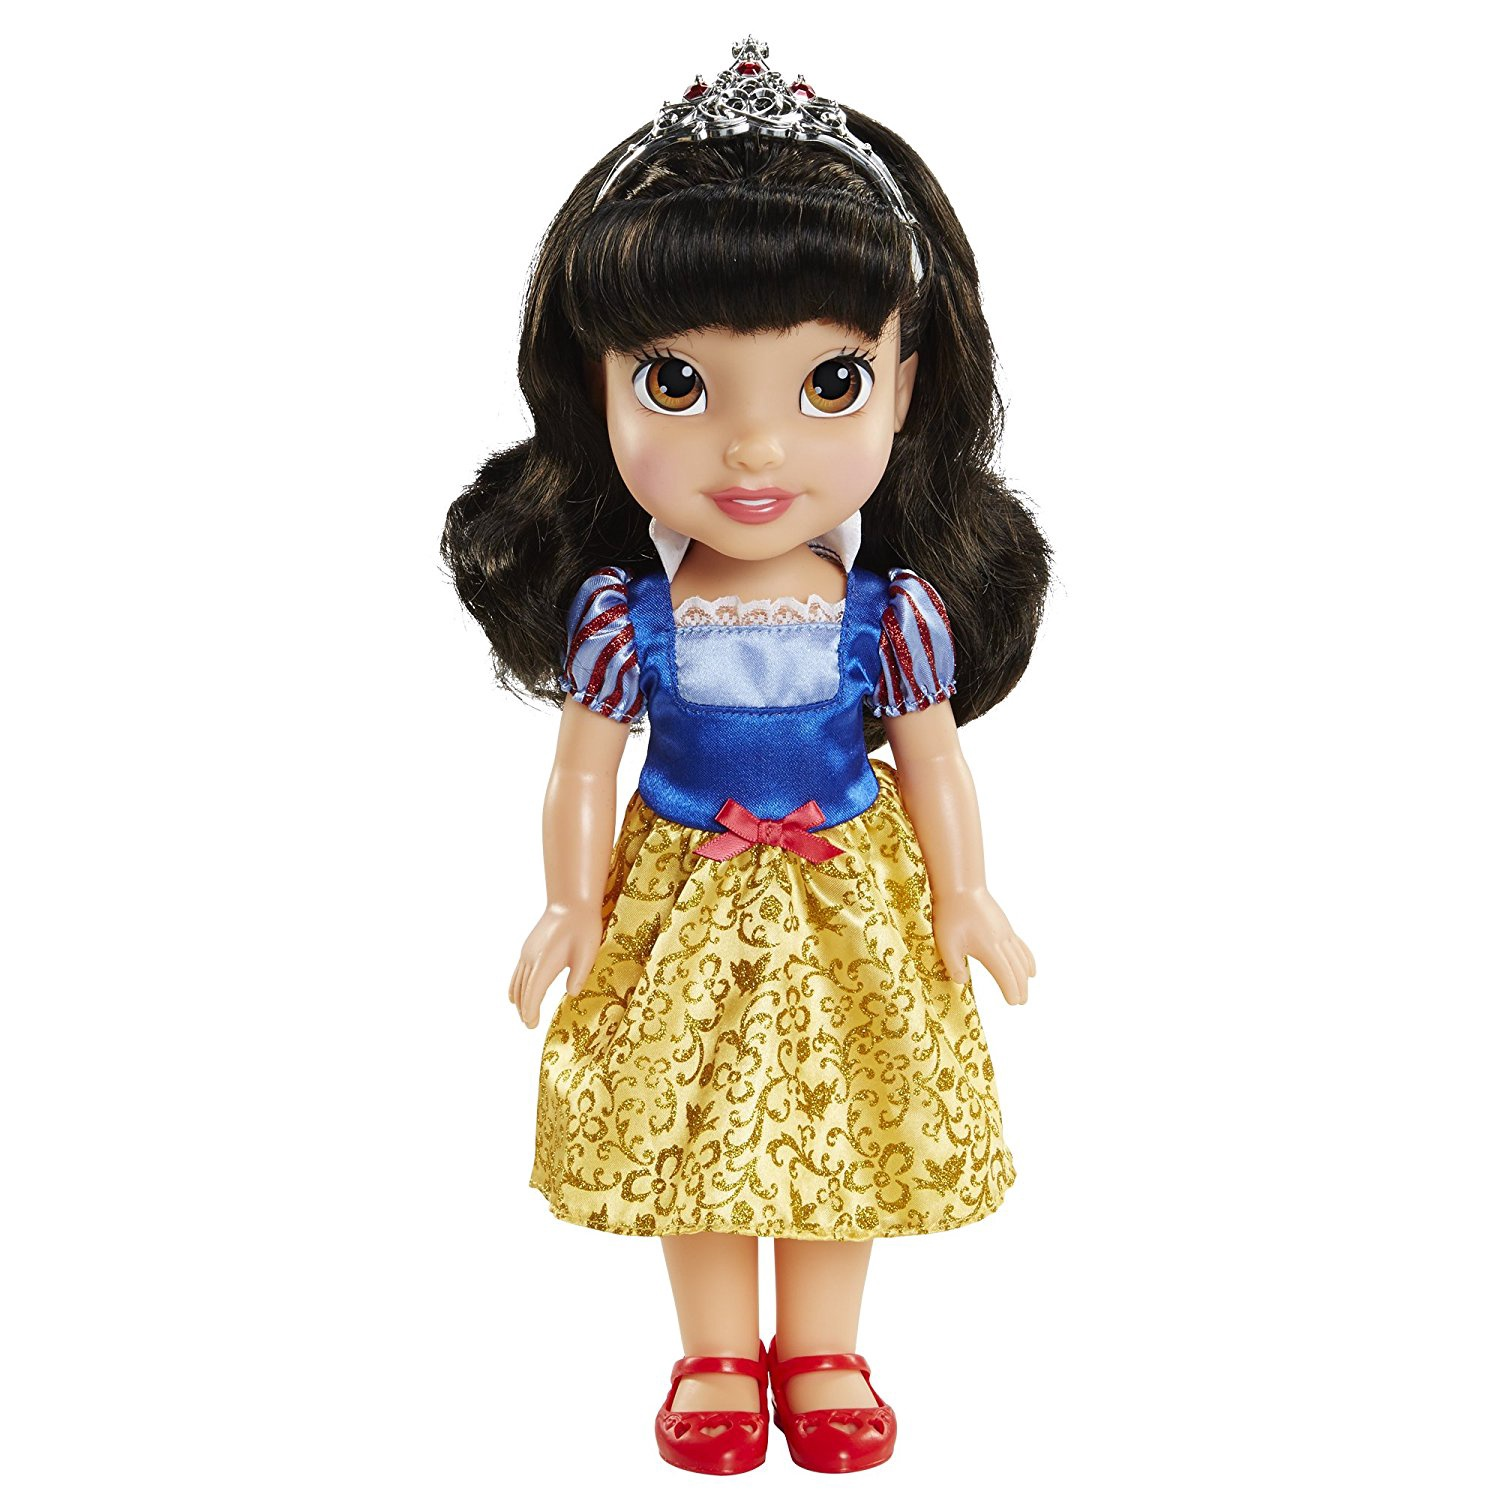 DISNEY PRINCESS CORE LARGE DOLL - SNOW WHITE